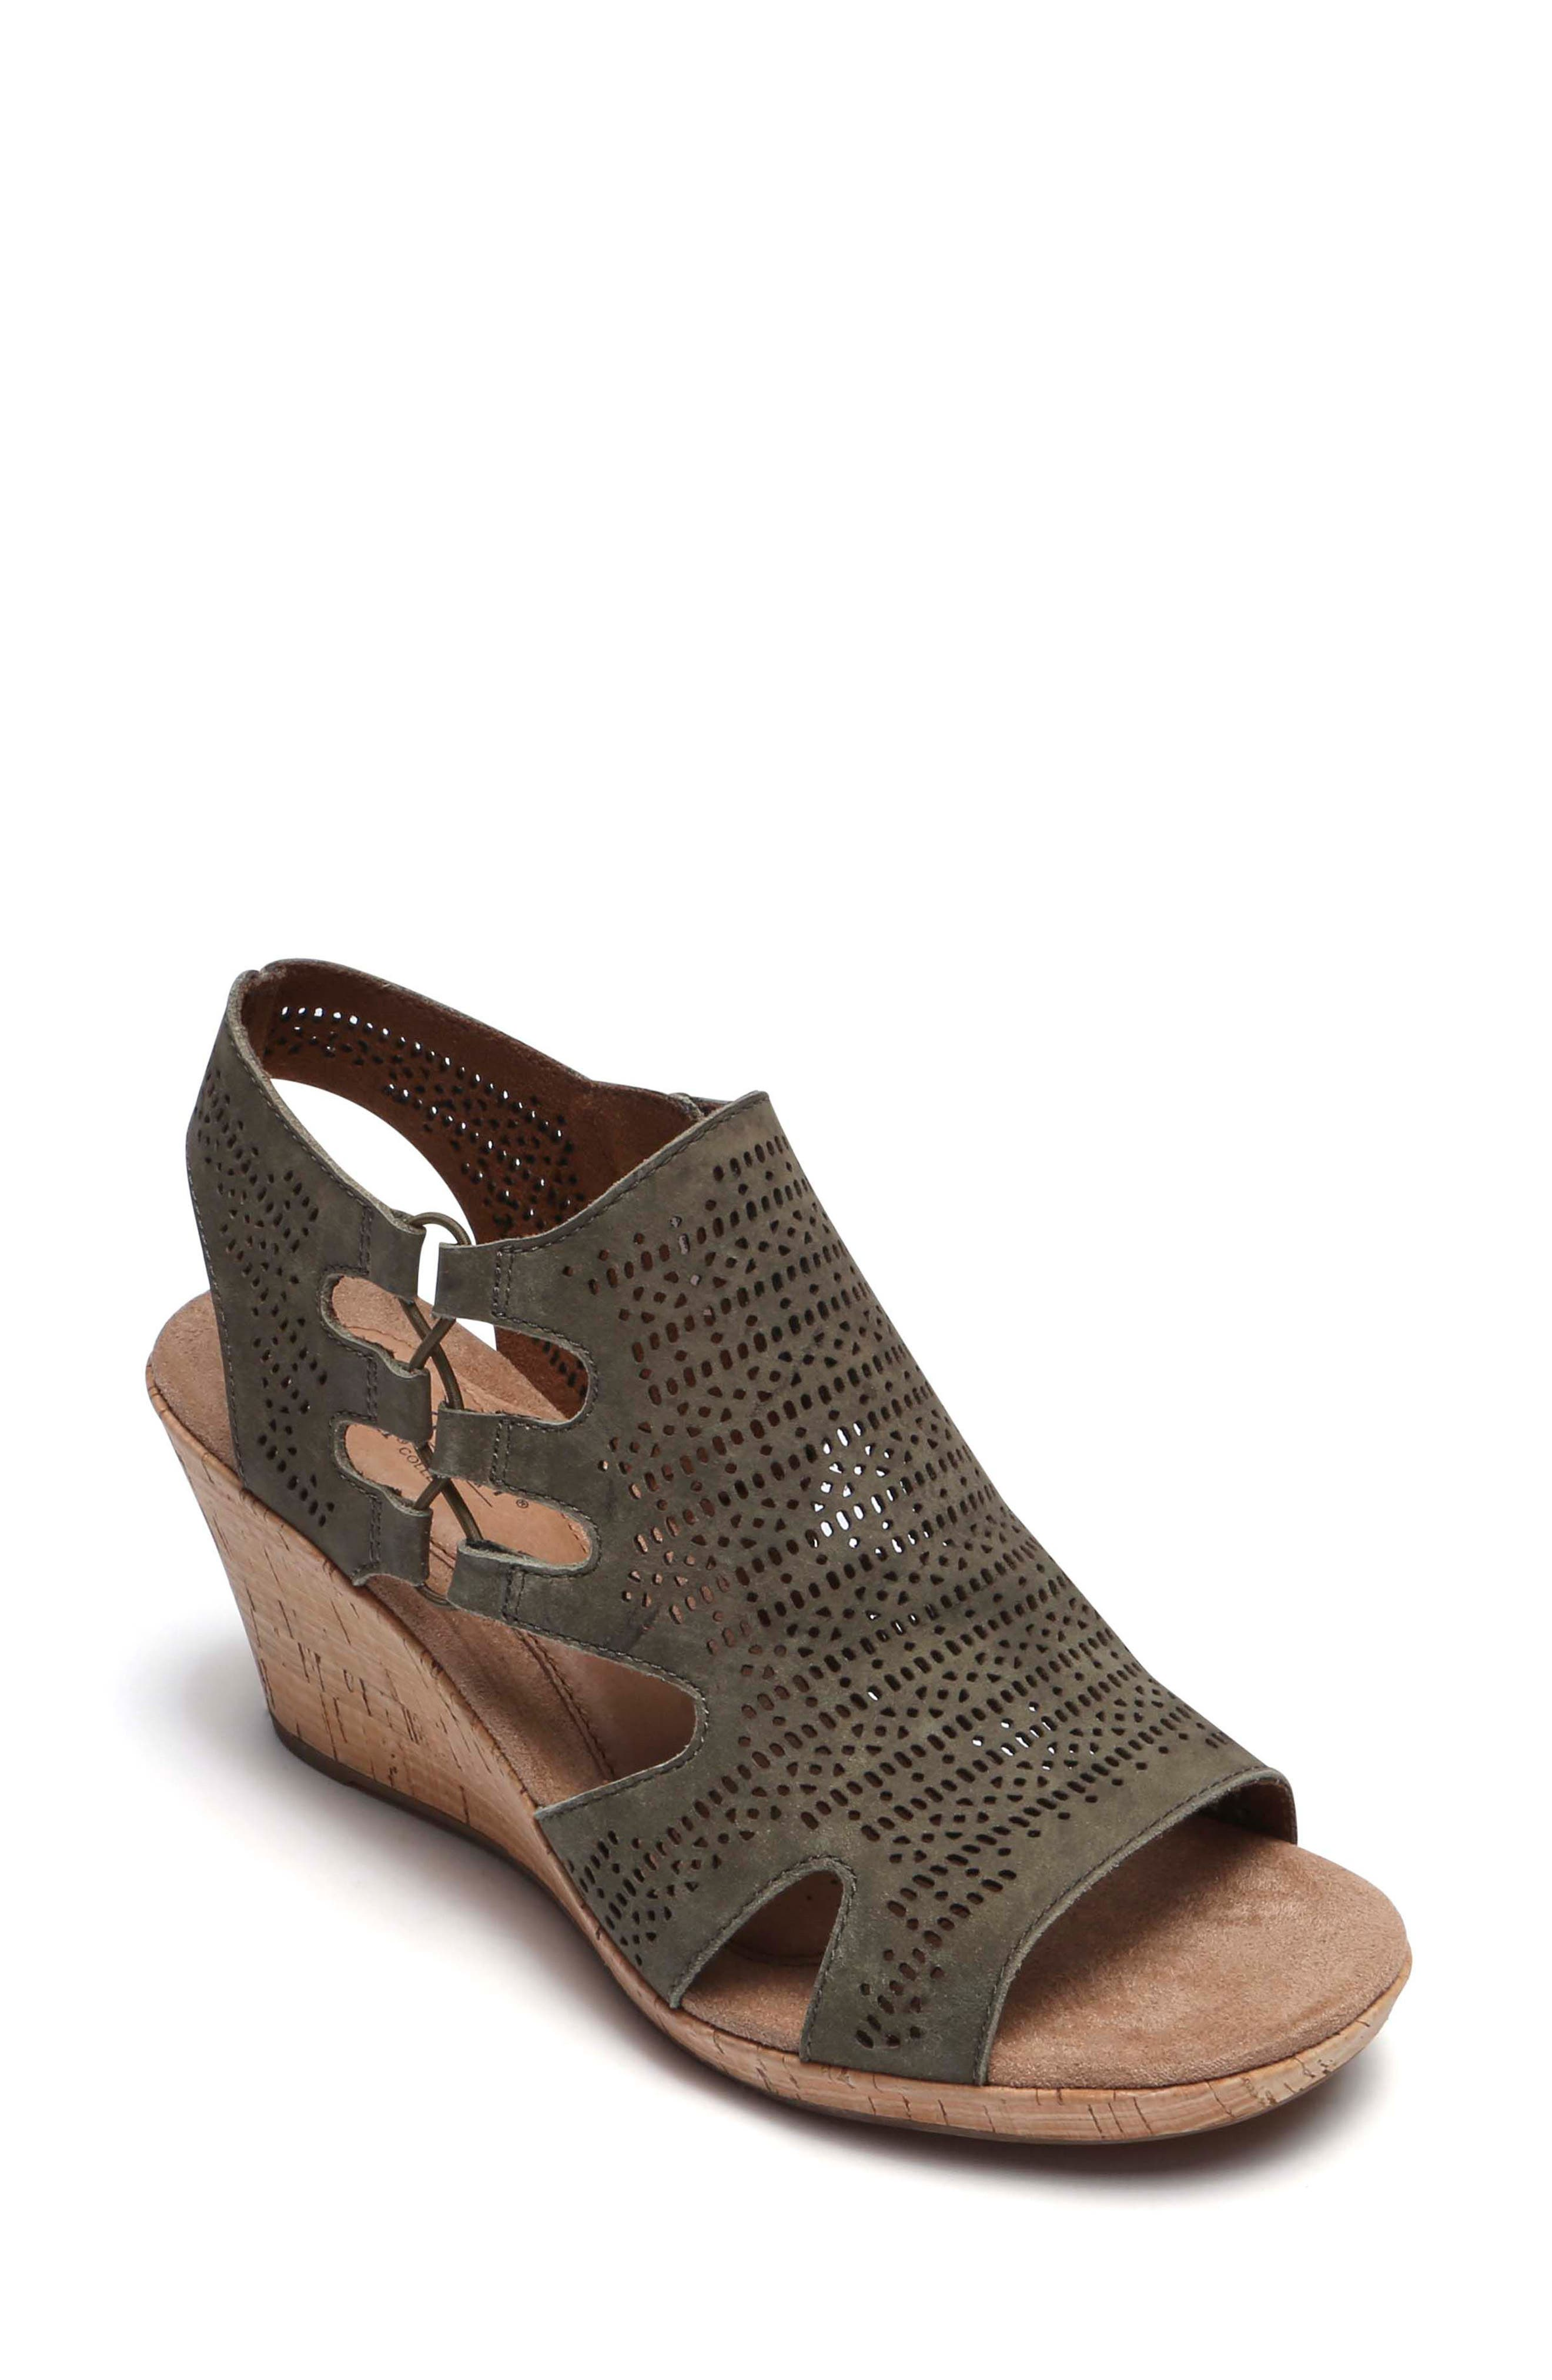 Janna Perforated Wedge Sandal,                             Main thumbnail 1, color,                             Green Nubuck Leather